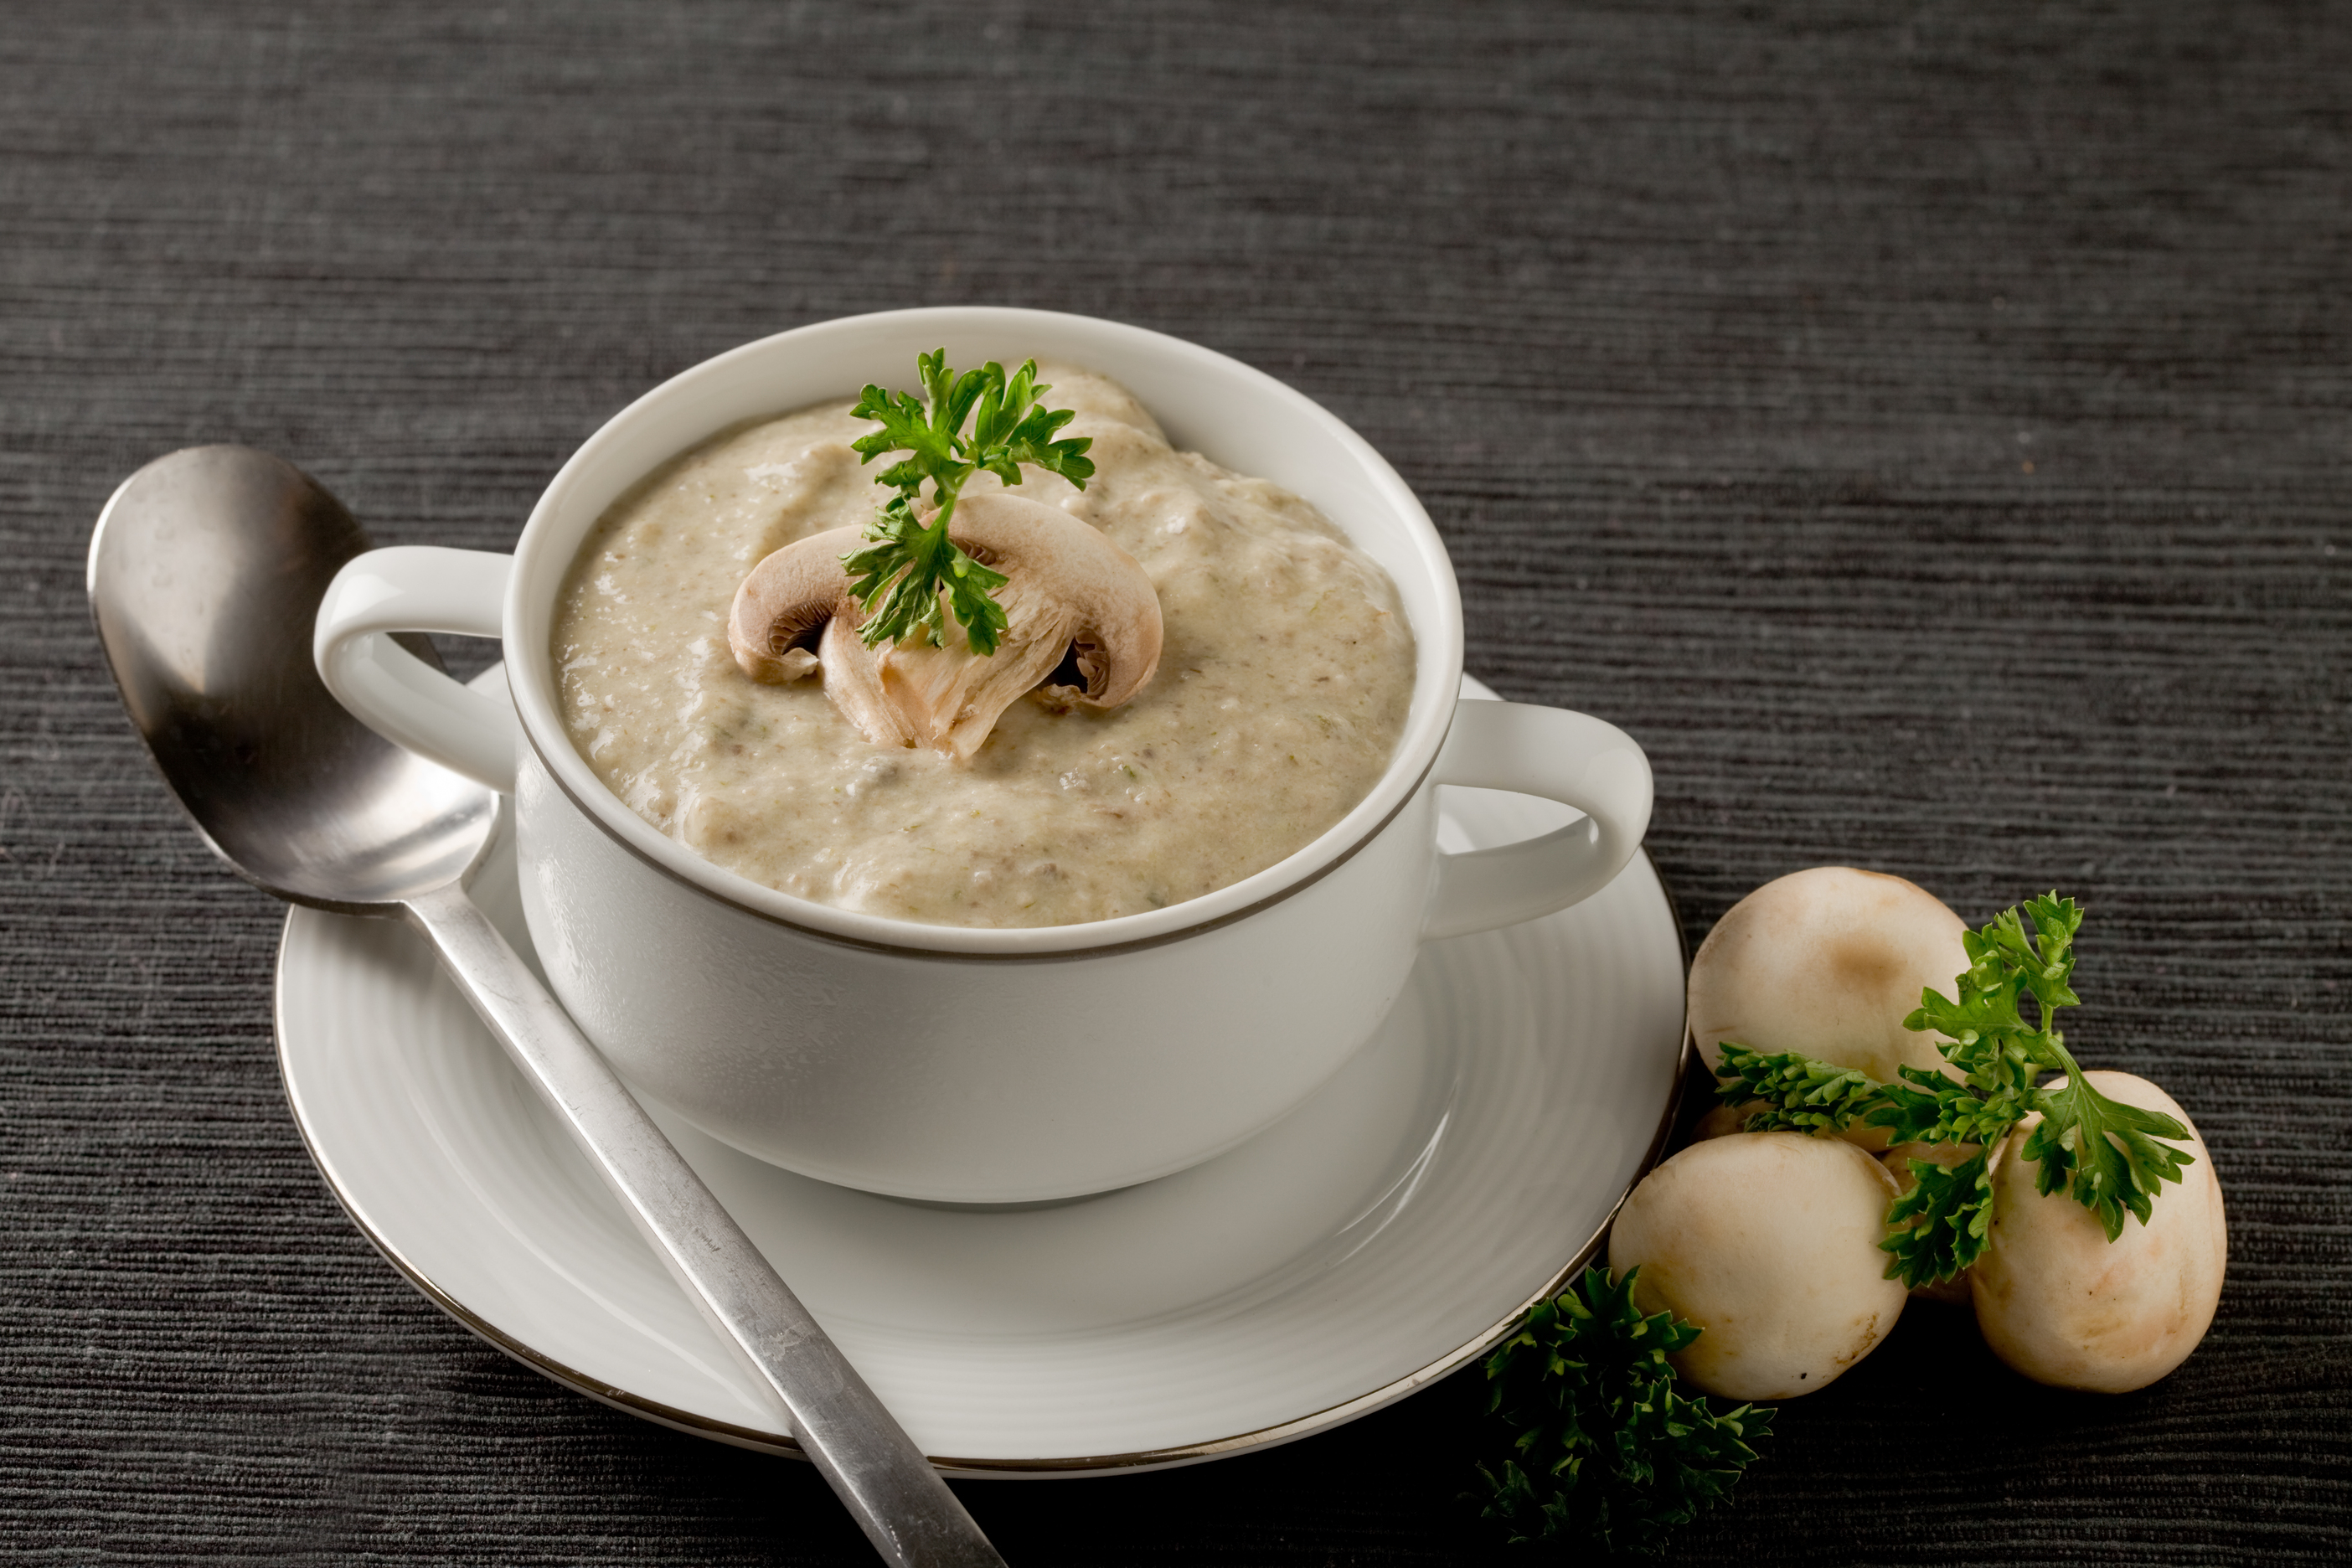 photo of delicious mushroom cream soup with parsley on grey towel